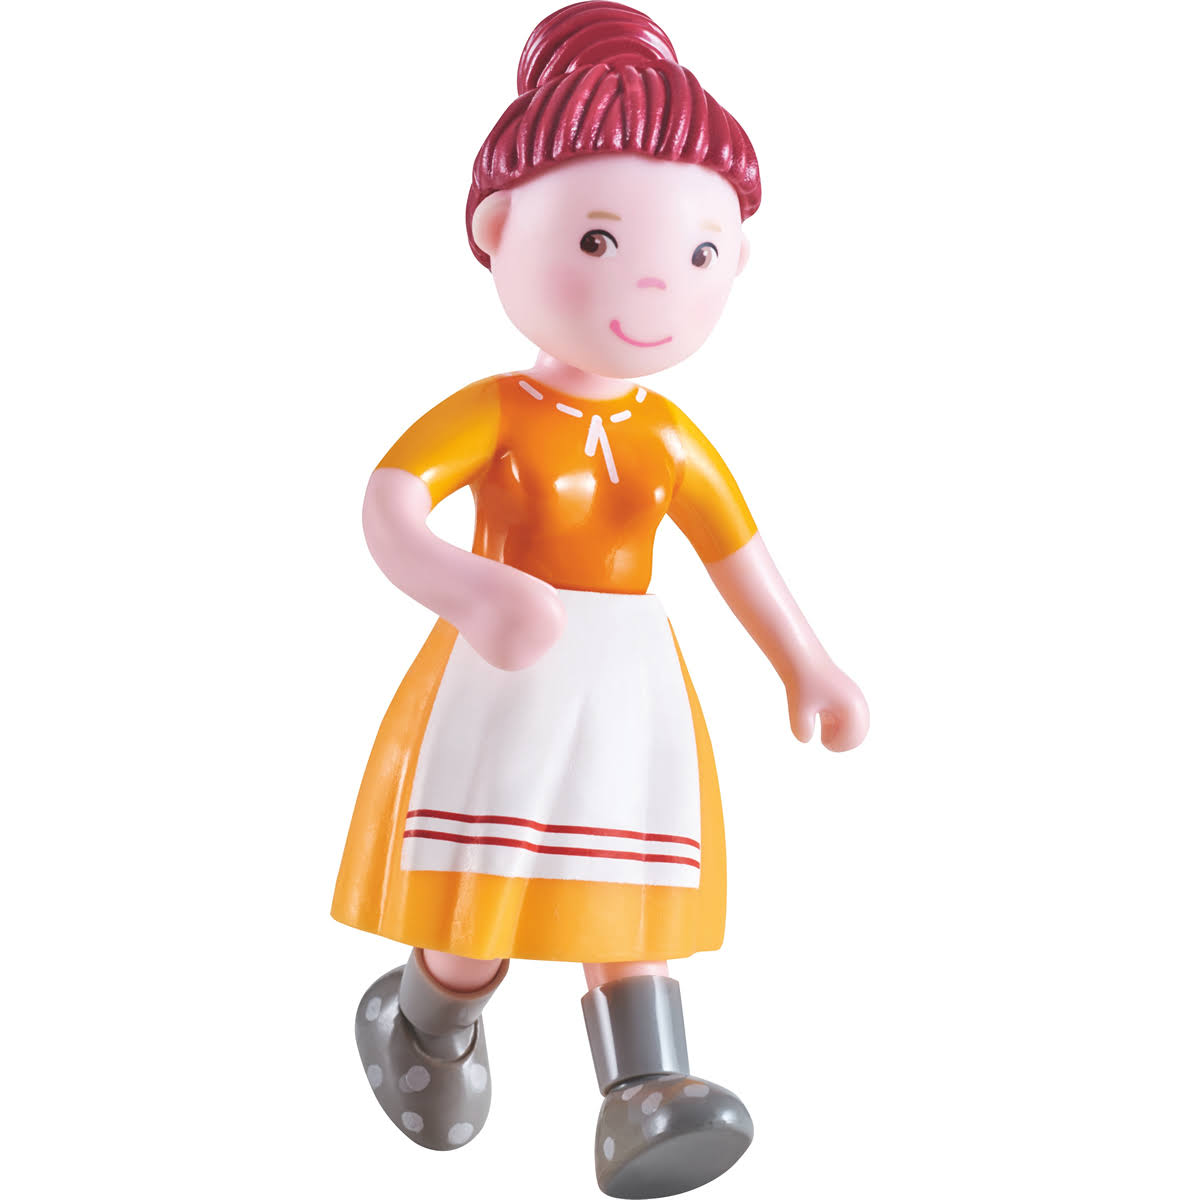 "Haba Little Friends Farmer Johanna- 4.5"" Bendy Doll Adult Figure"